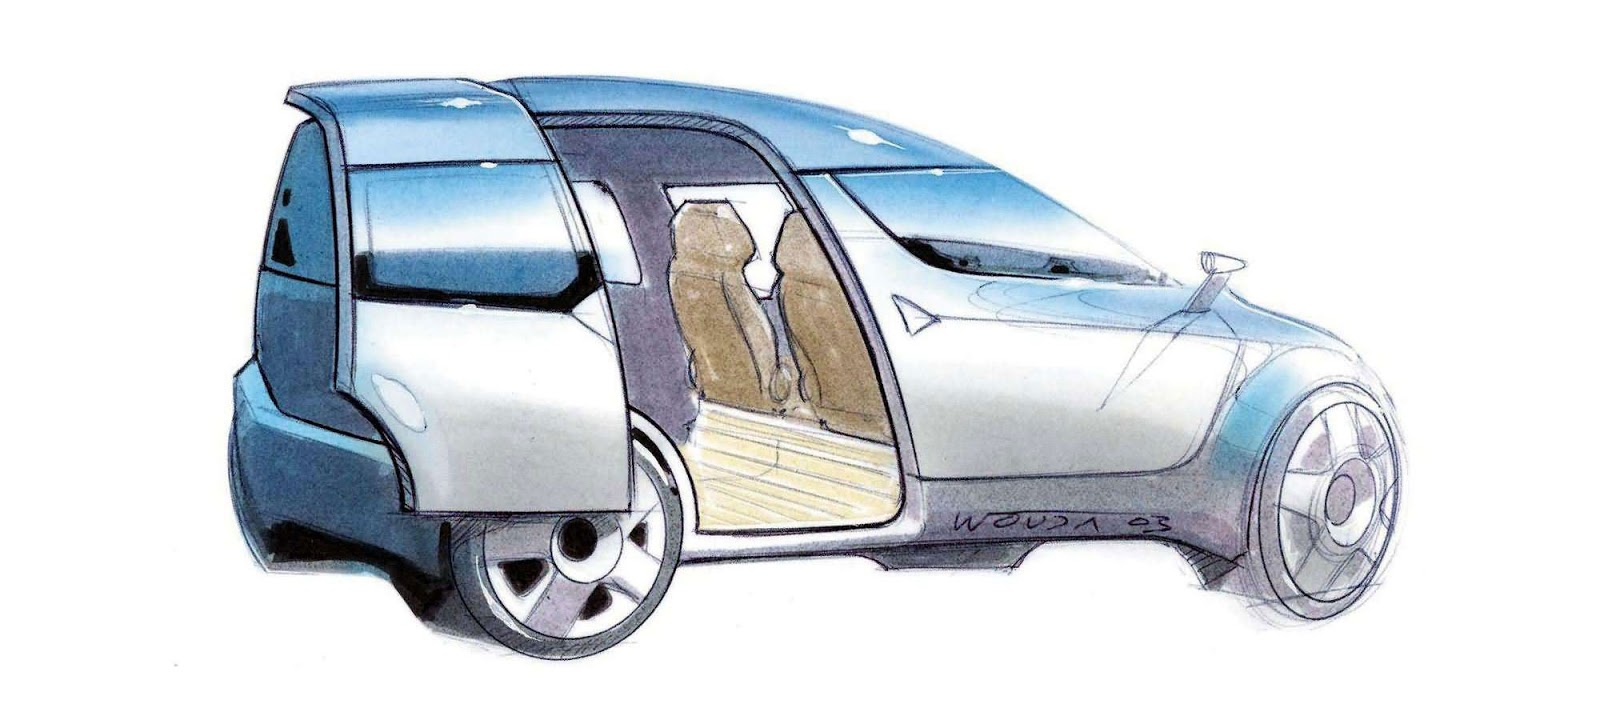 Skoda Roomster sketch by Peter Wouda - early theme with sliding rear door